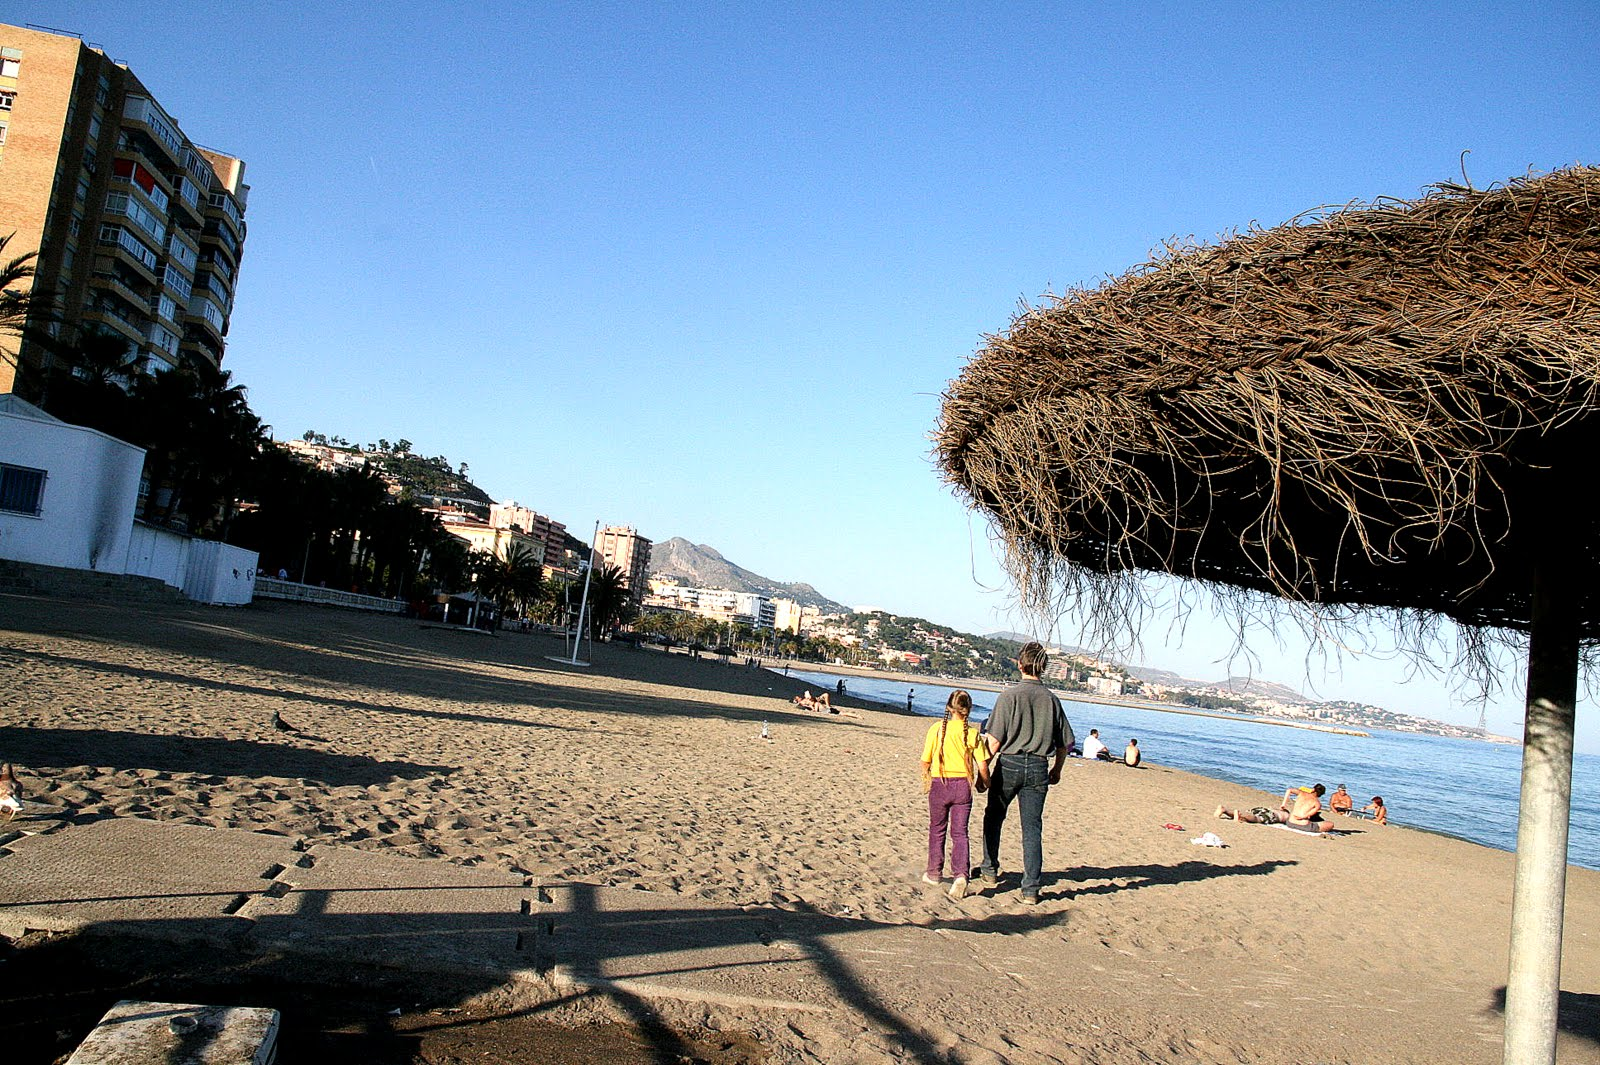 The beach in Mal&#xE1;ga, Spain.